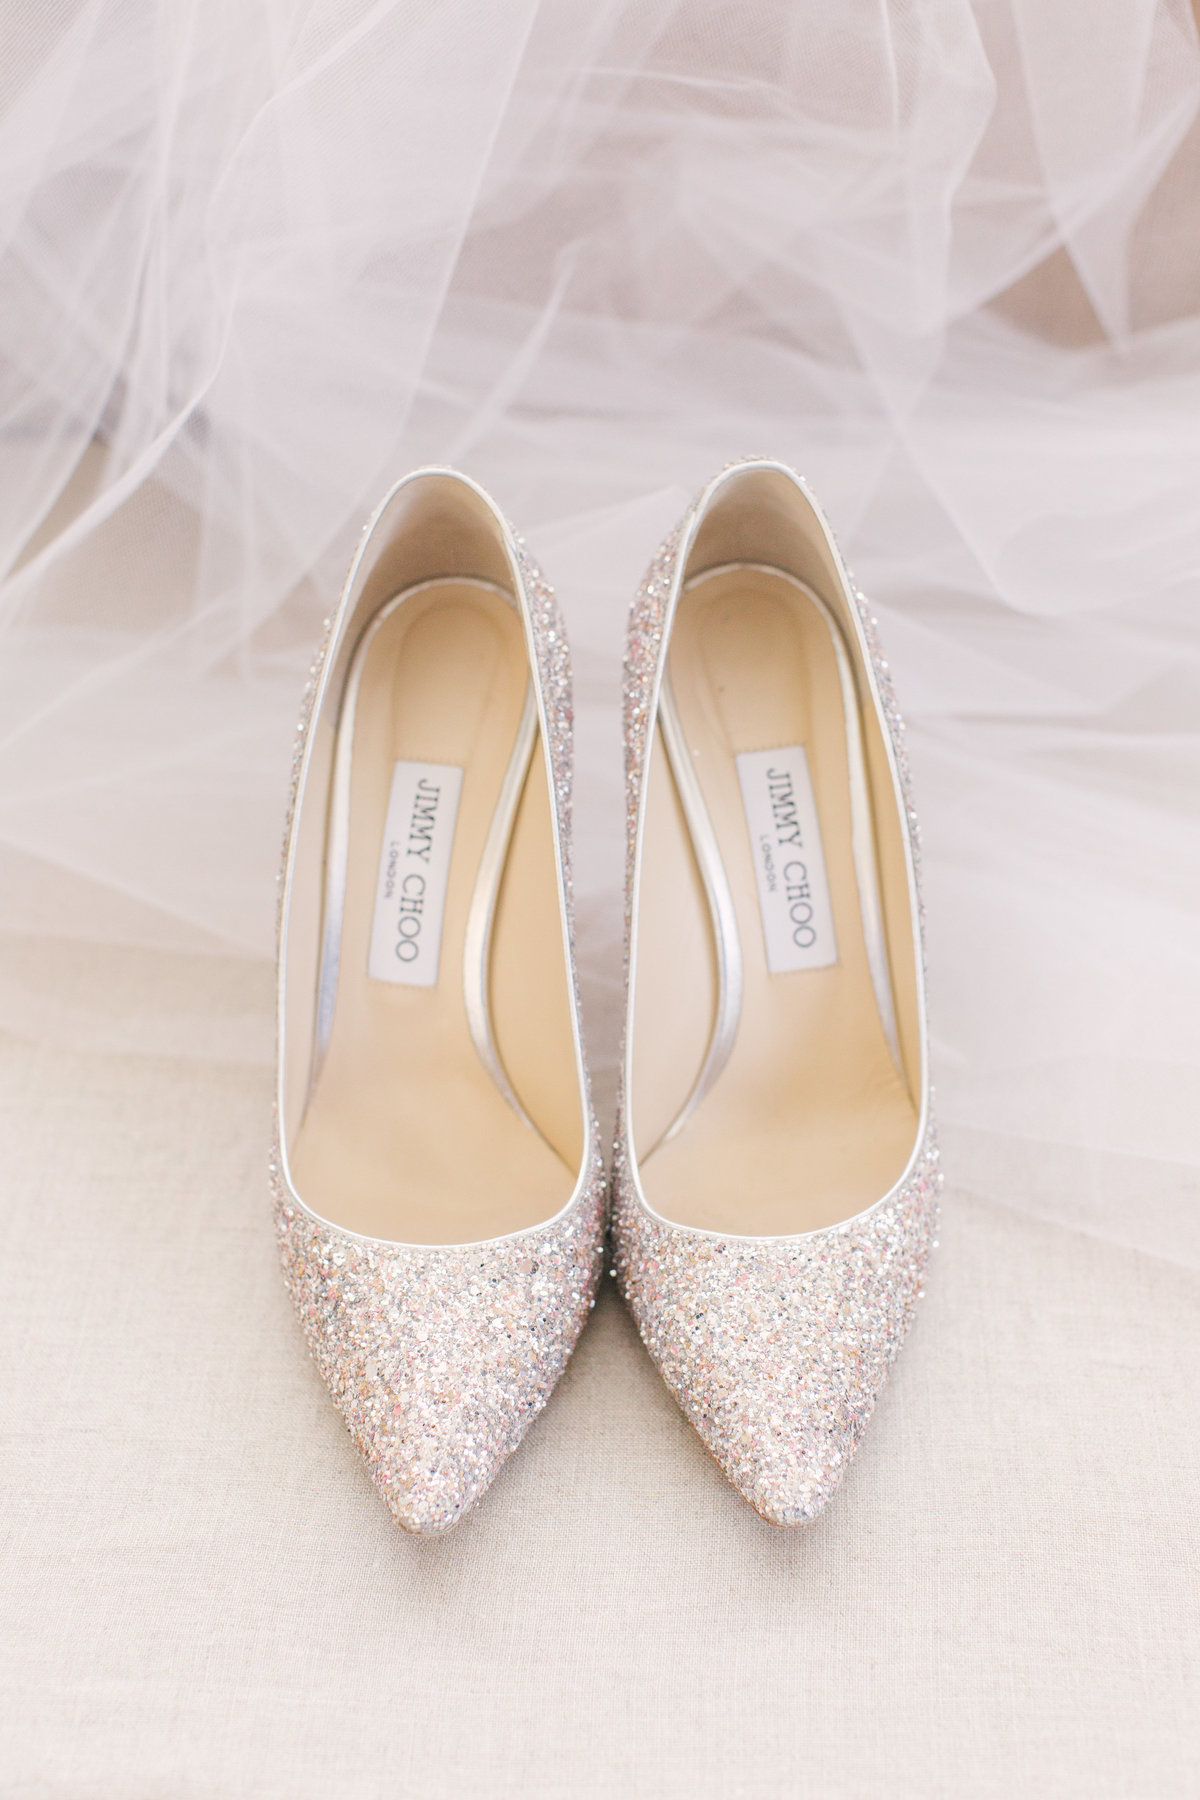 Scottish Rite Cathedral Wedding ShoesPhoto